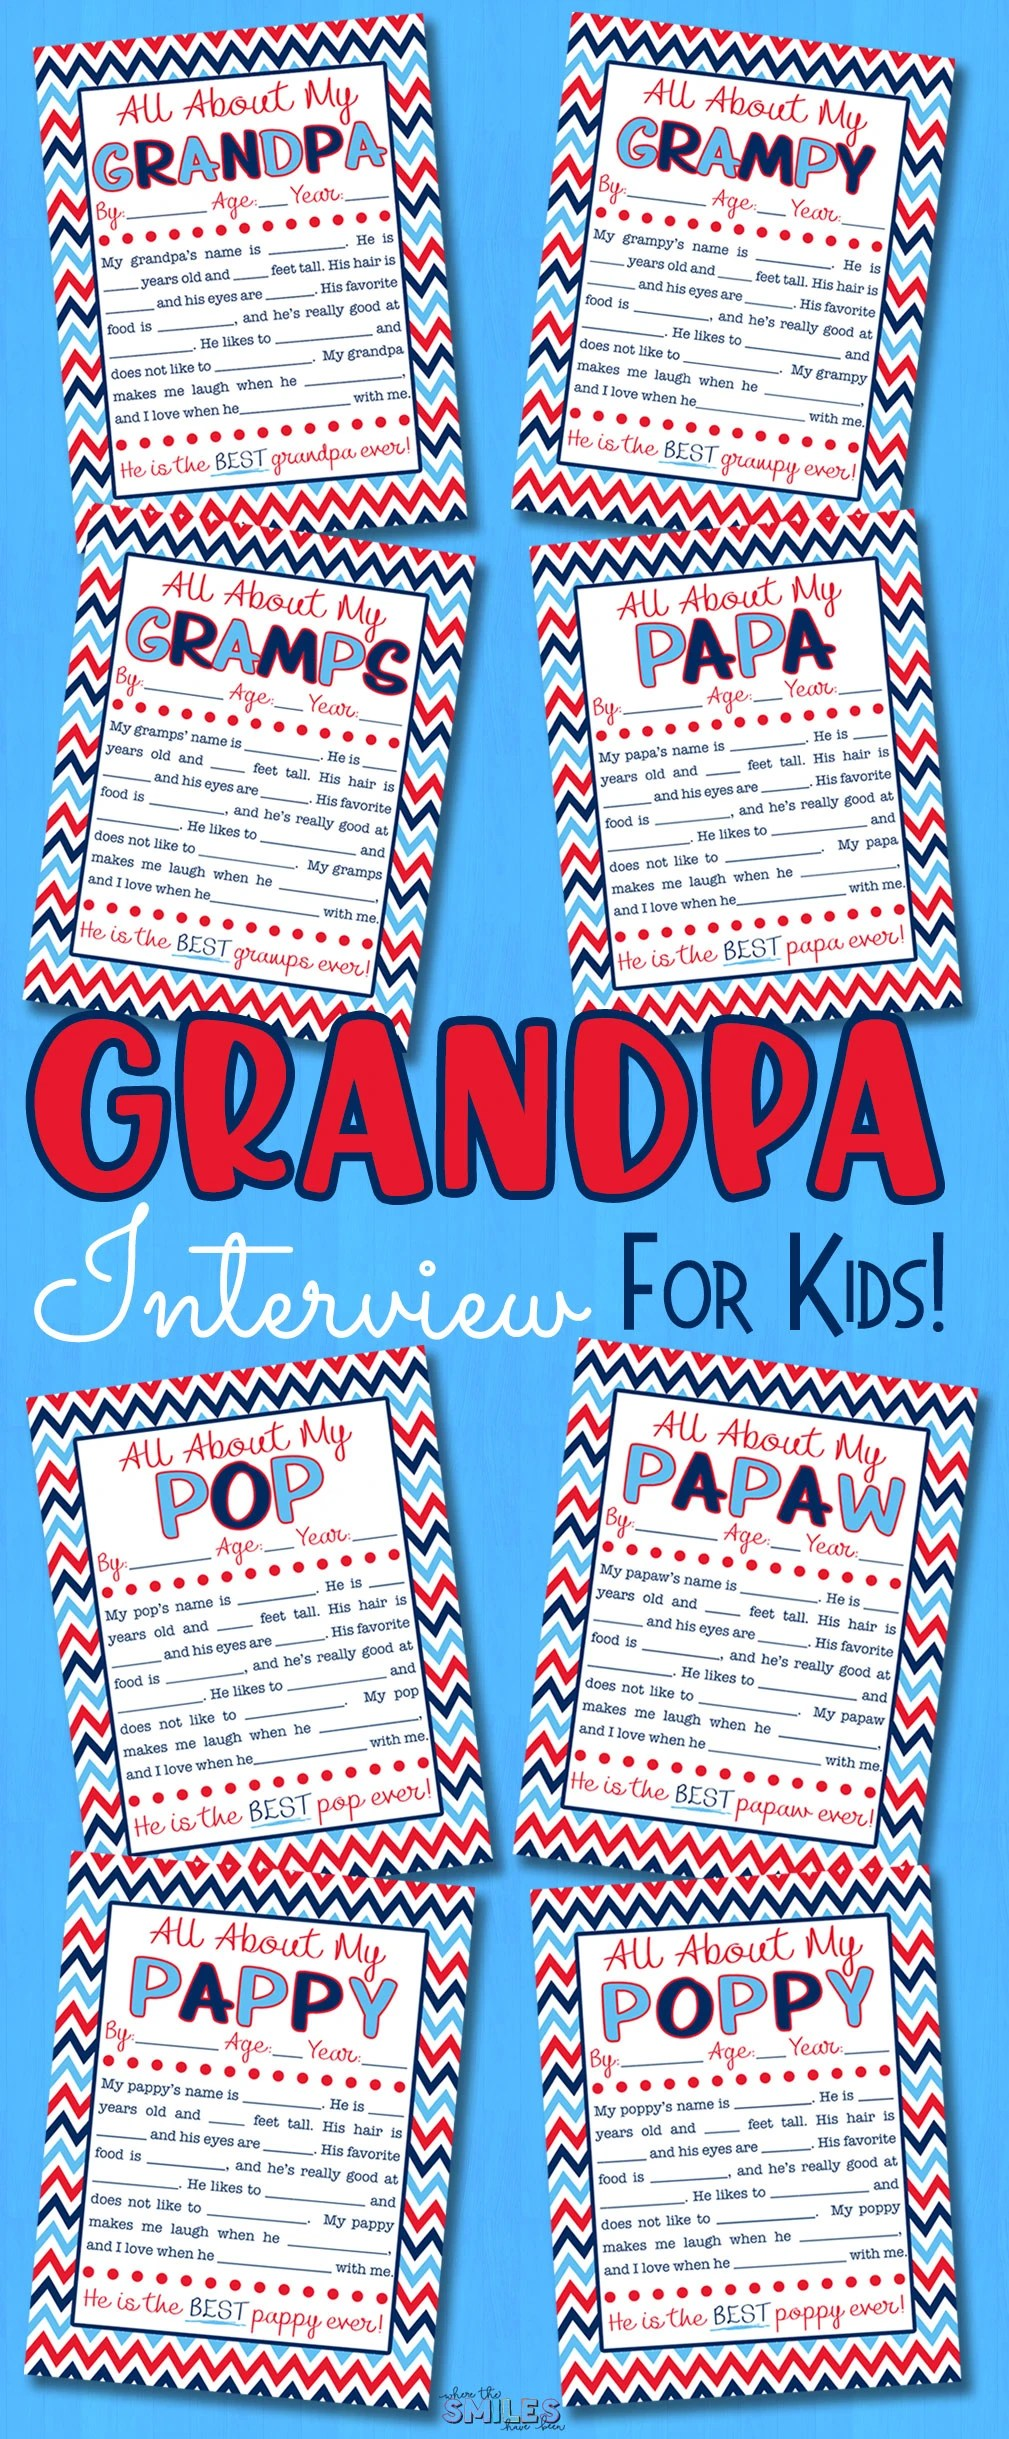 image about All About My Papa Printable known as All With regards to My Grandpa Job interview with Totally free Printable 8